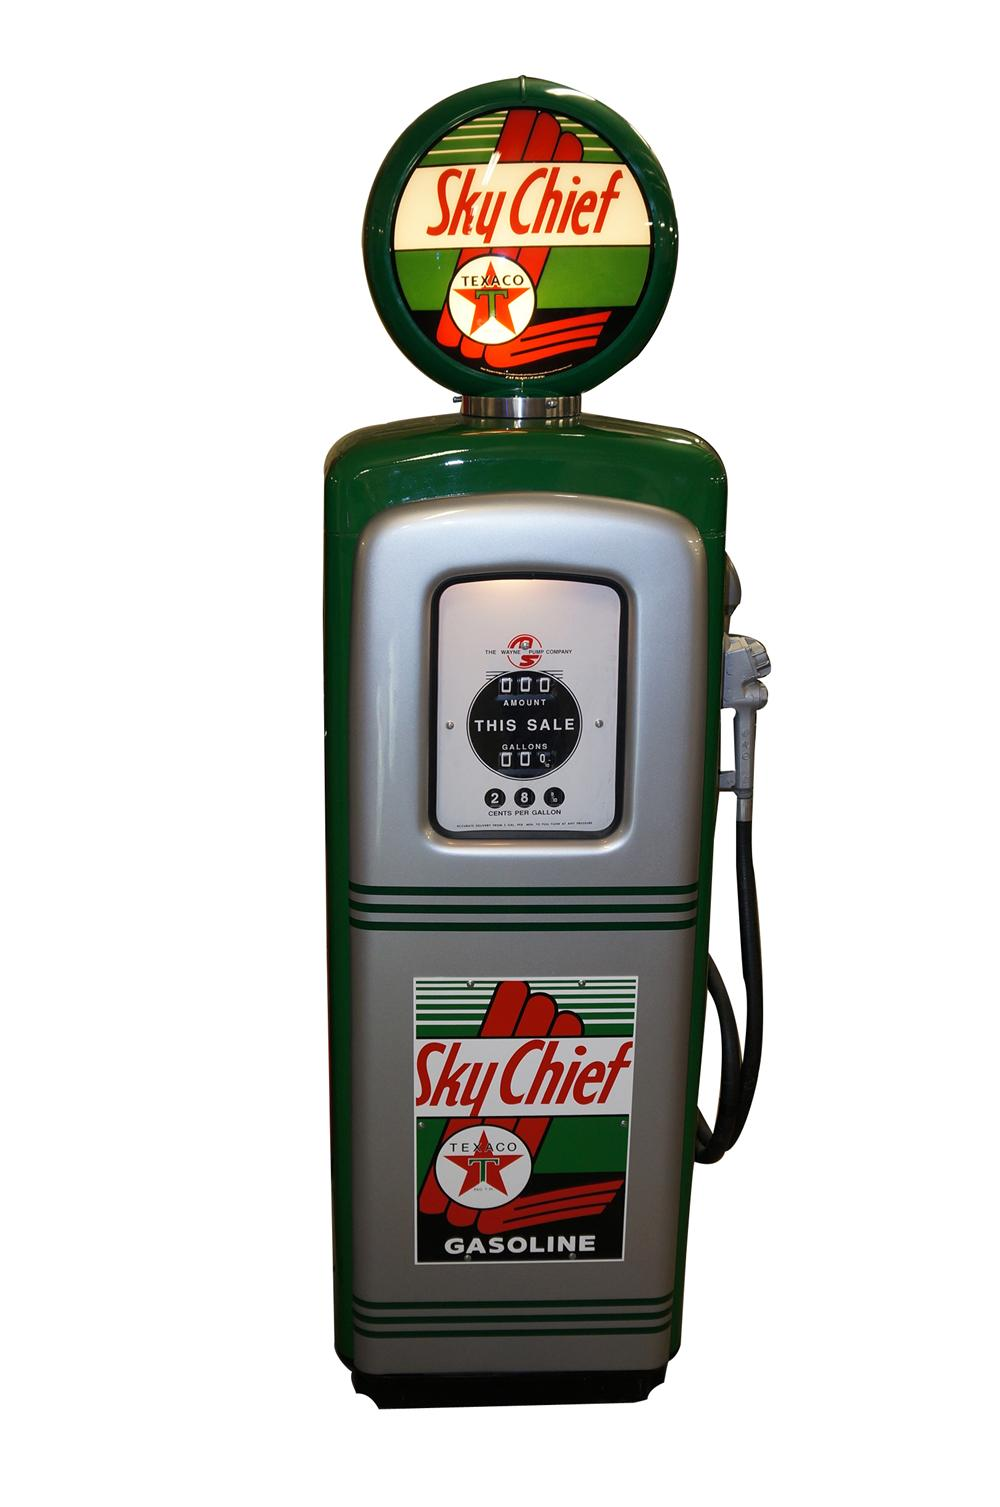 Stunning 1948 Texaco Oil Sky Chief Gasoline restored M/S 80 service station gas pump. - Front 3/4 - 139525